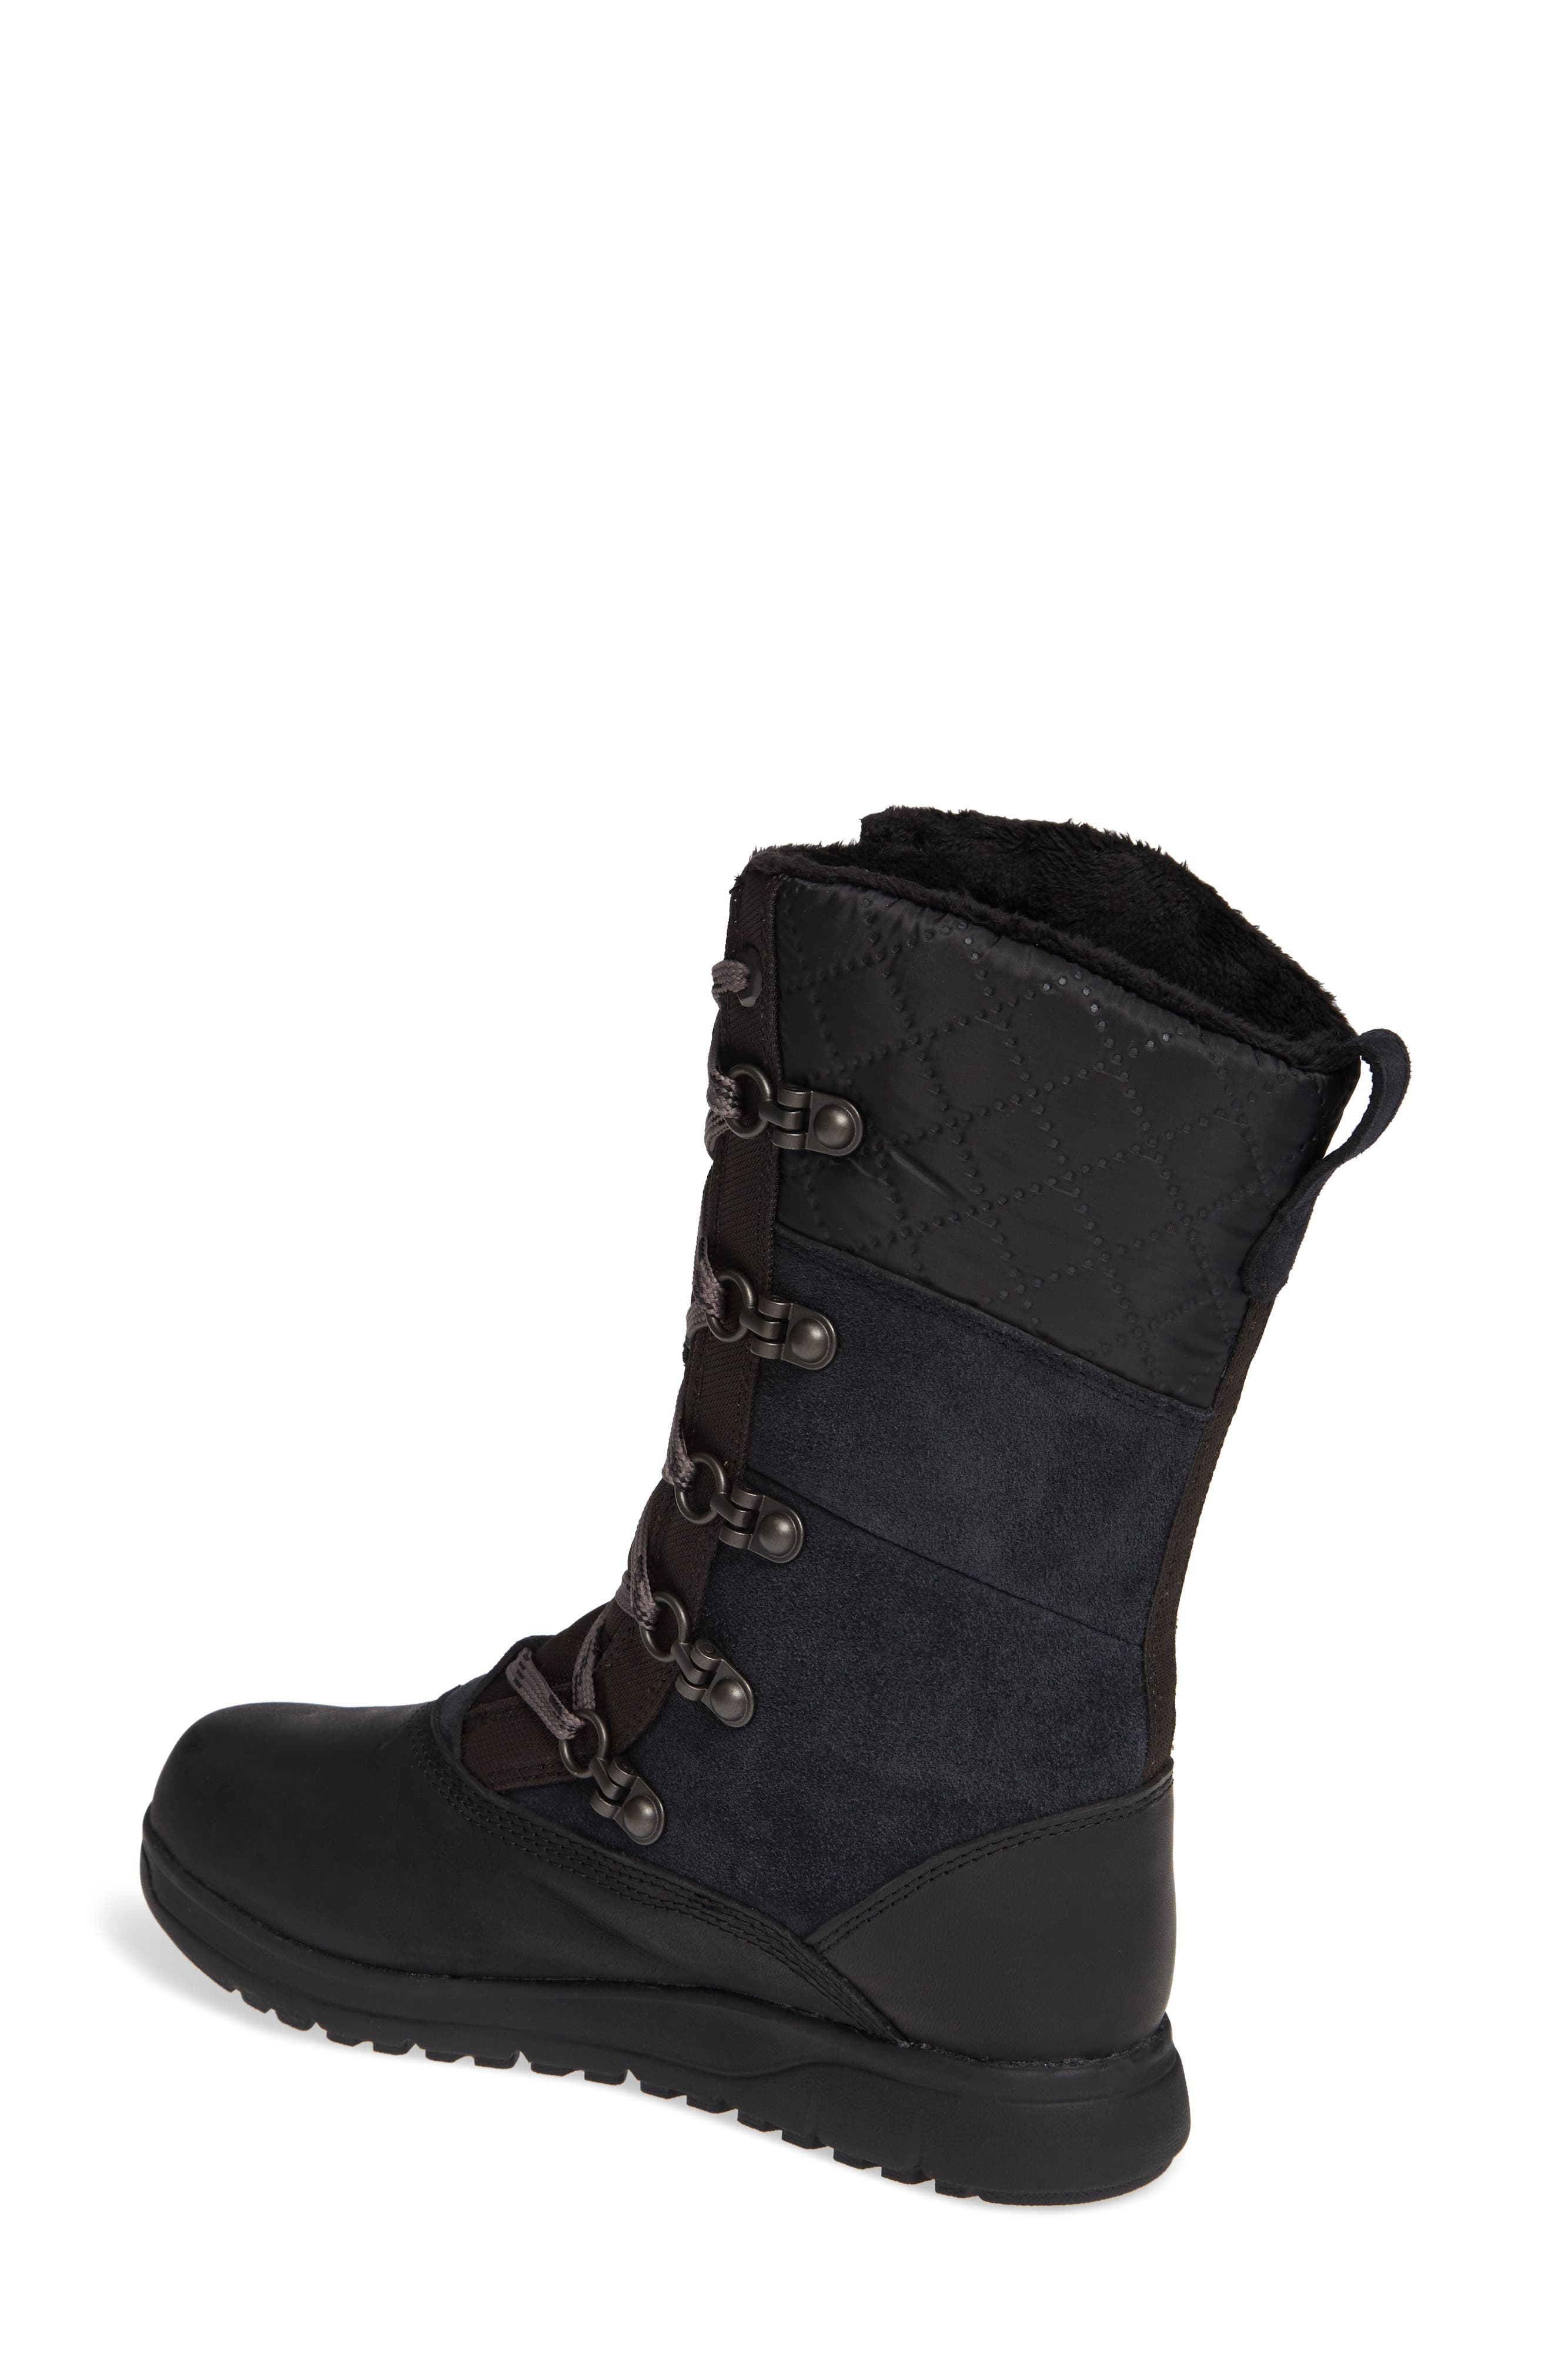 Haven Point Waterproof Boot,                             Alternate thumbnail 2, color,                             001